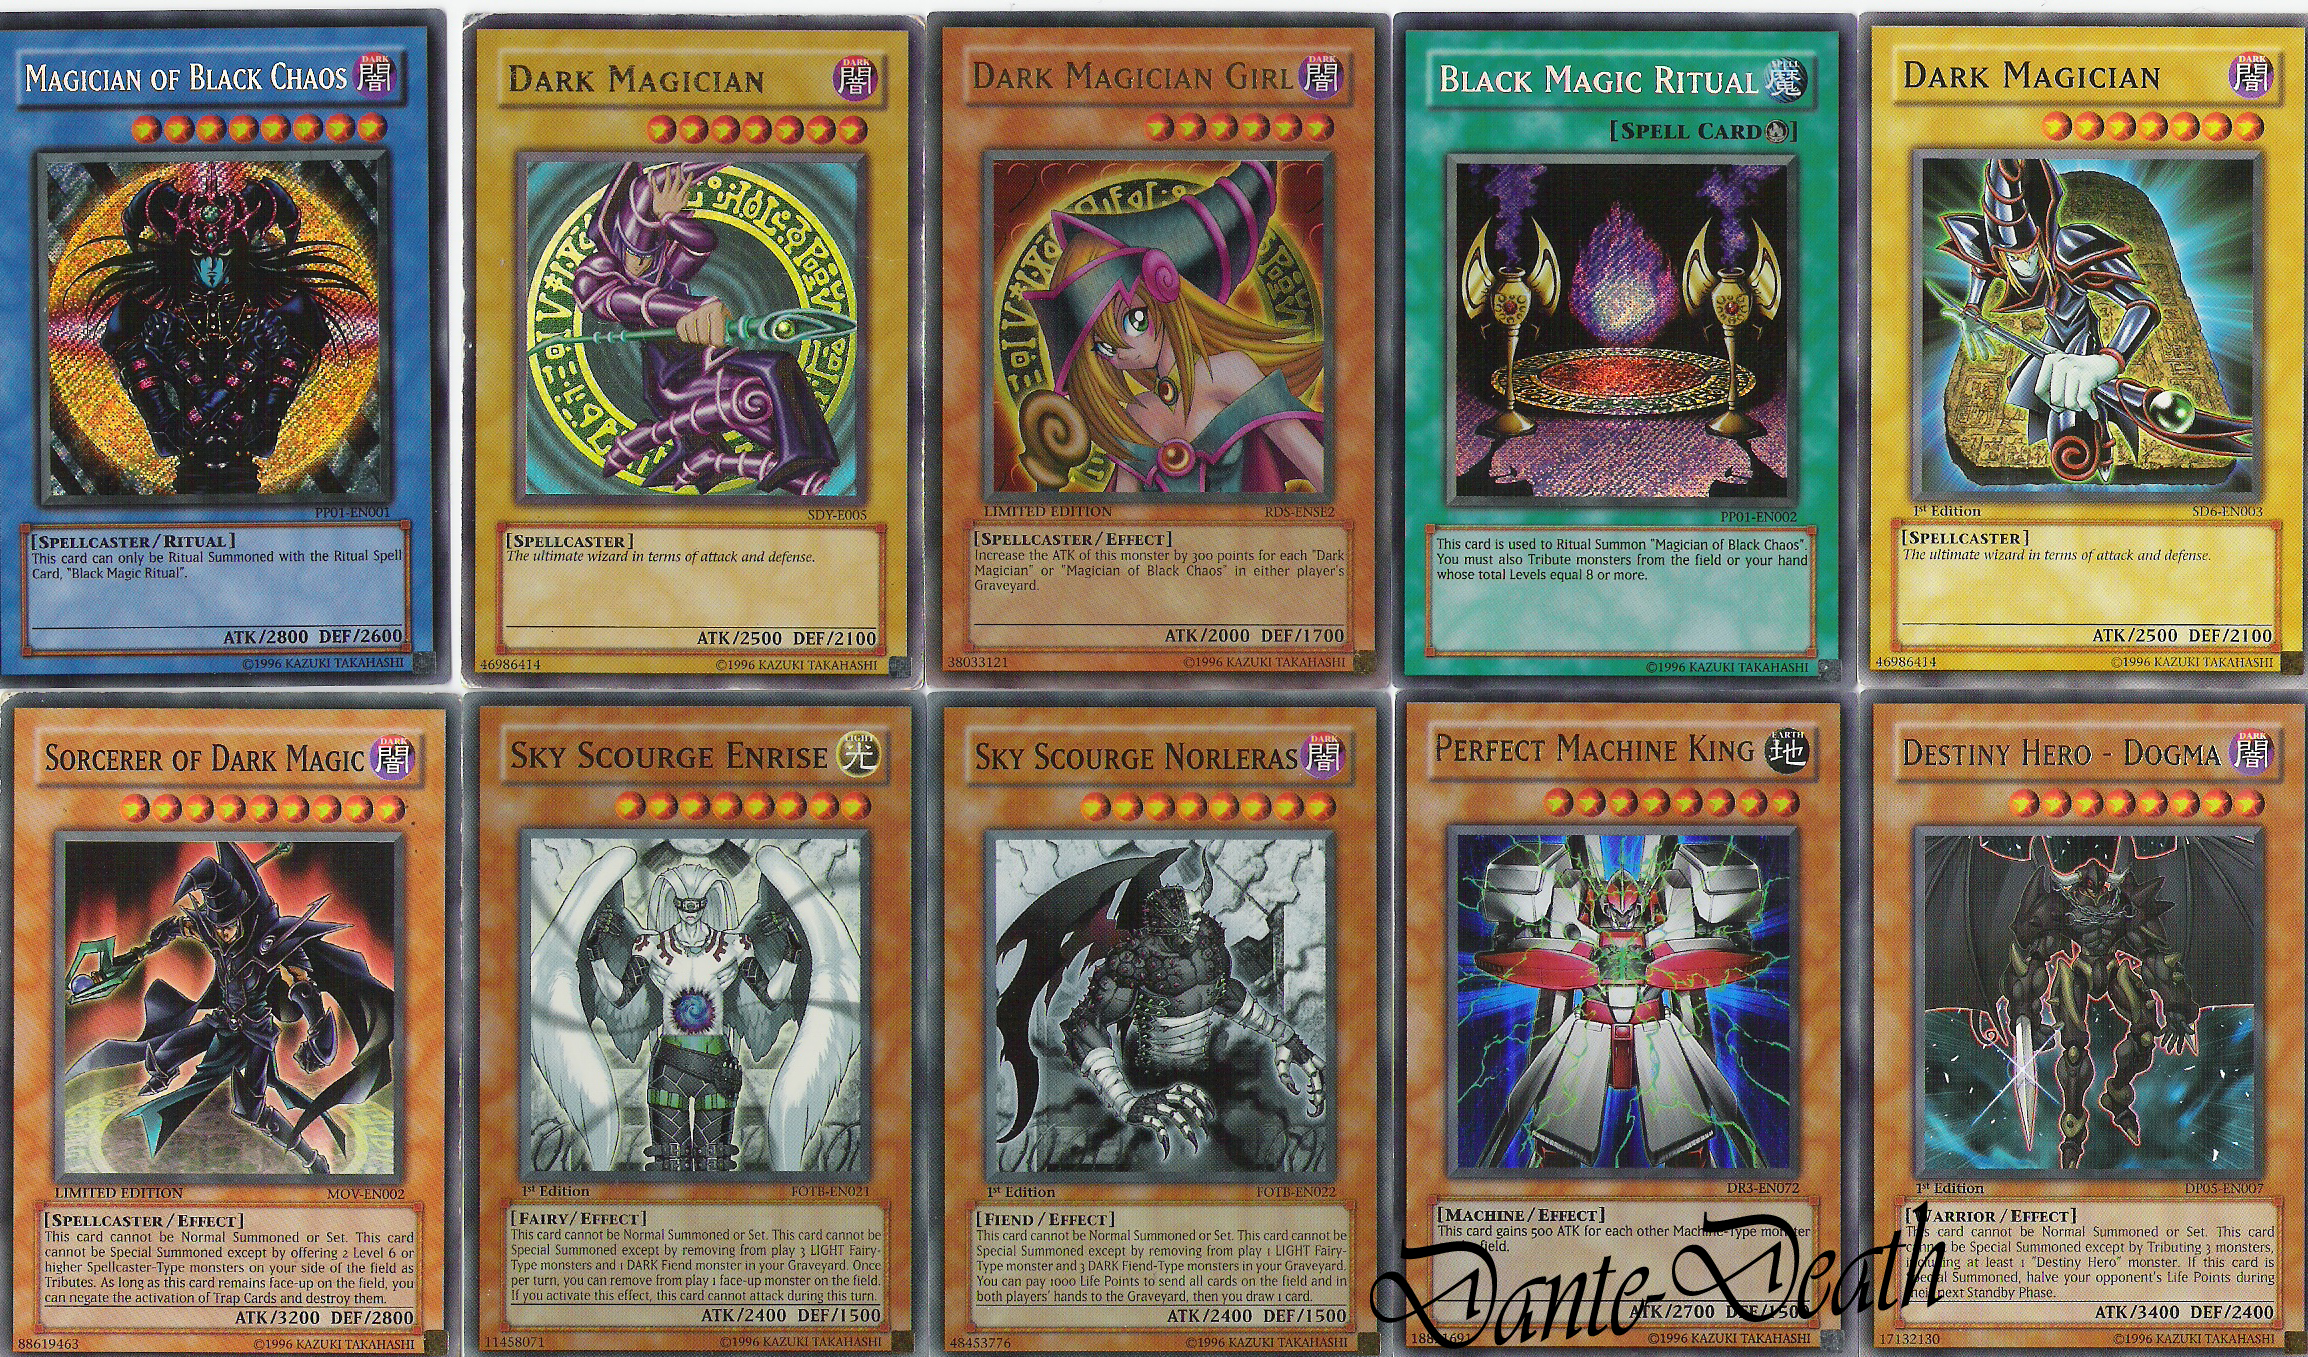 Yu Gi Oh Cards 17 Wide Wallpaper   Animewpcom 2308x1357